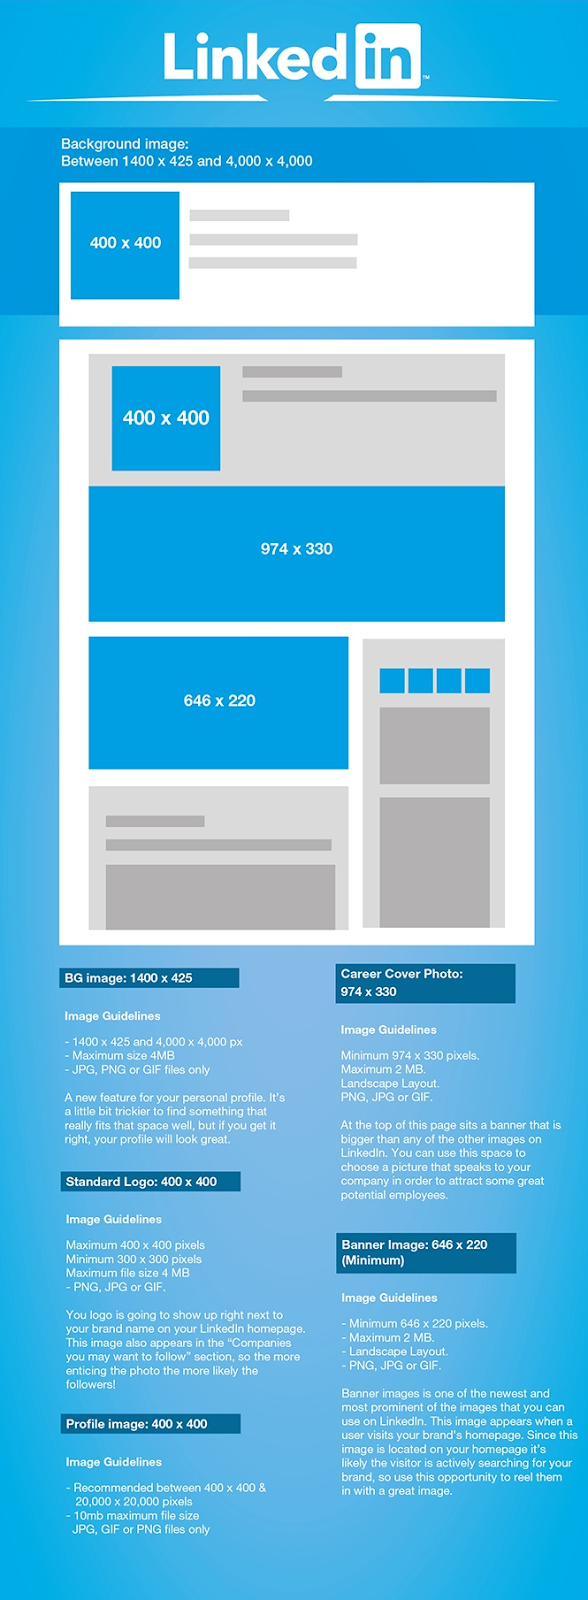 The Photo and Image cover Sizes on LinkedIn